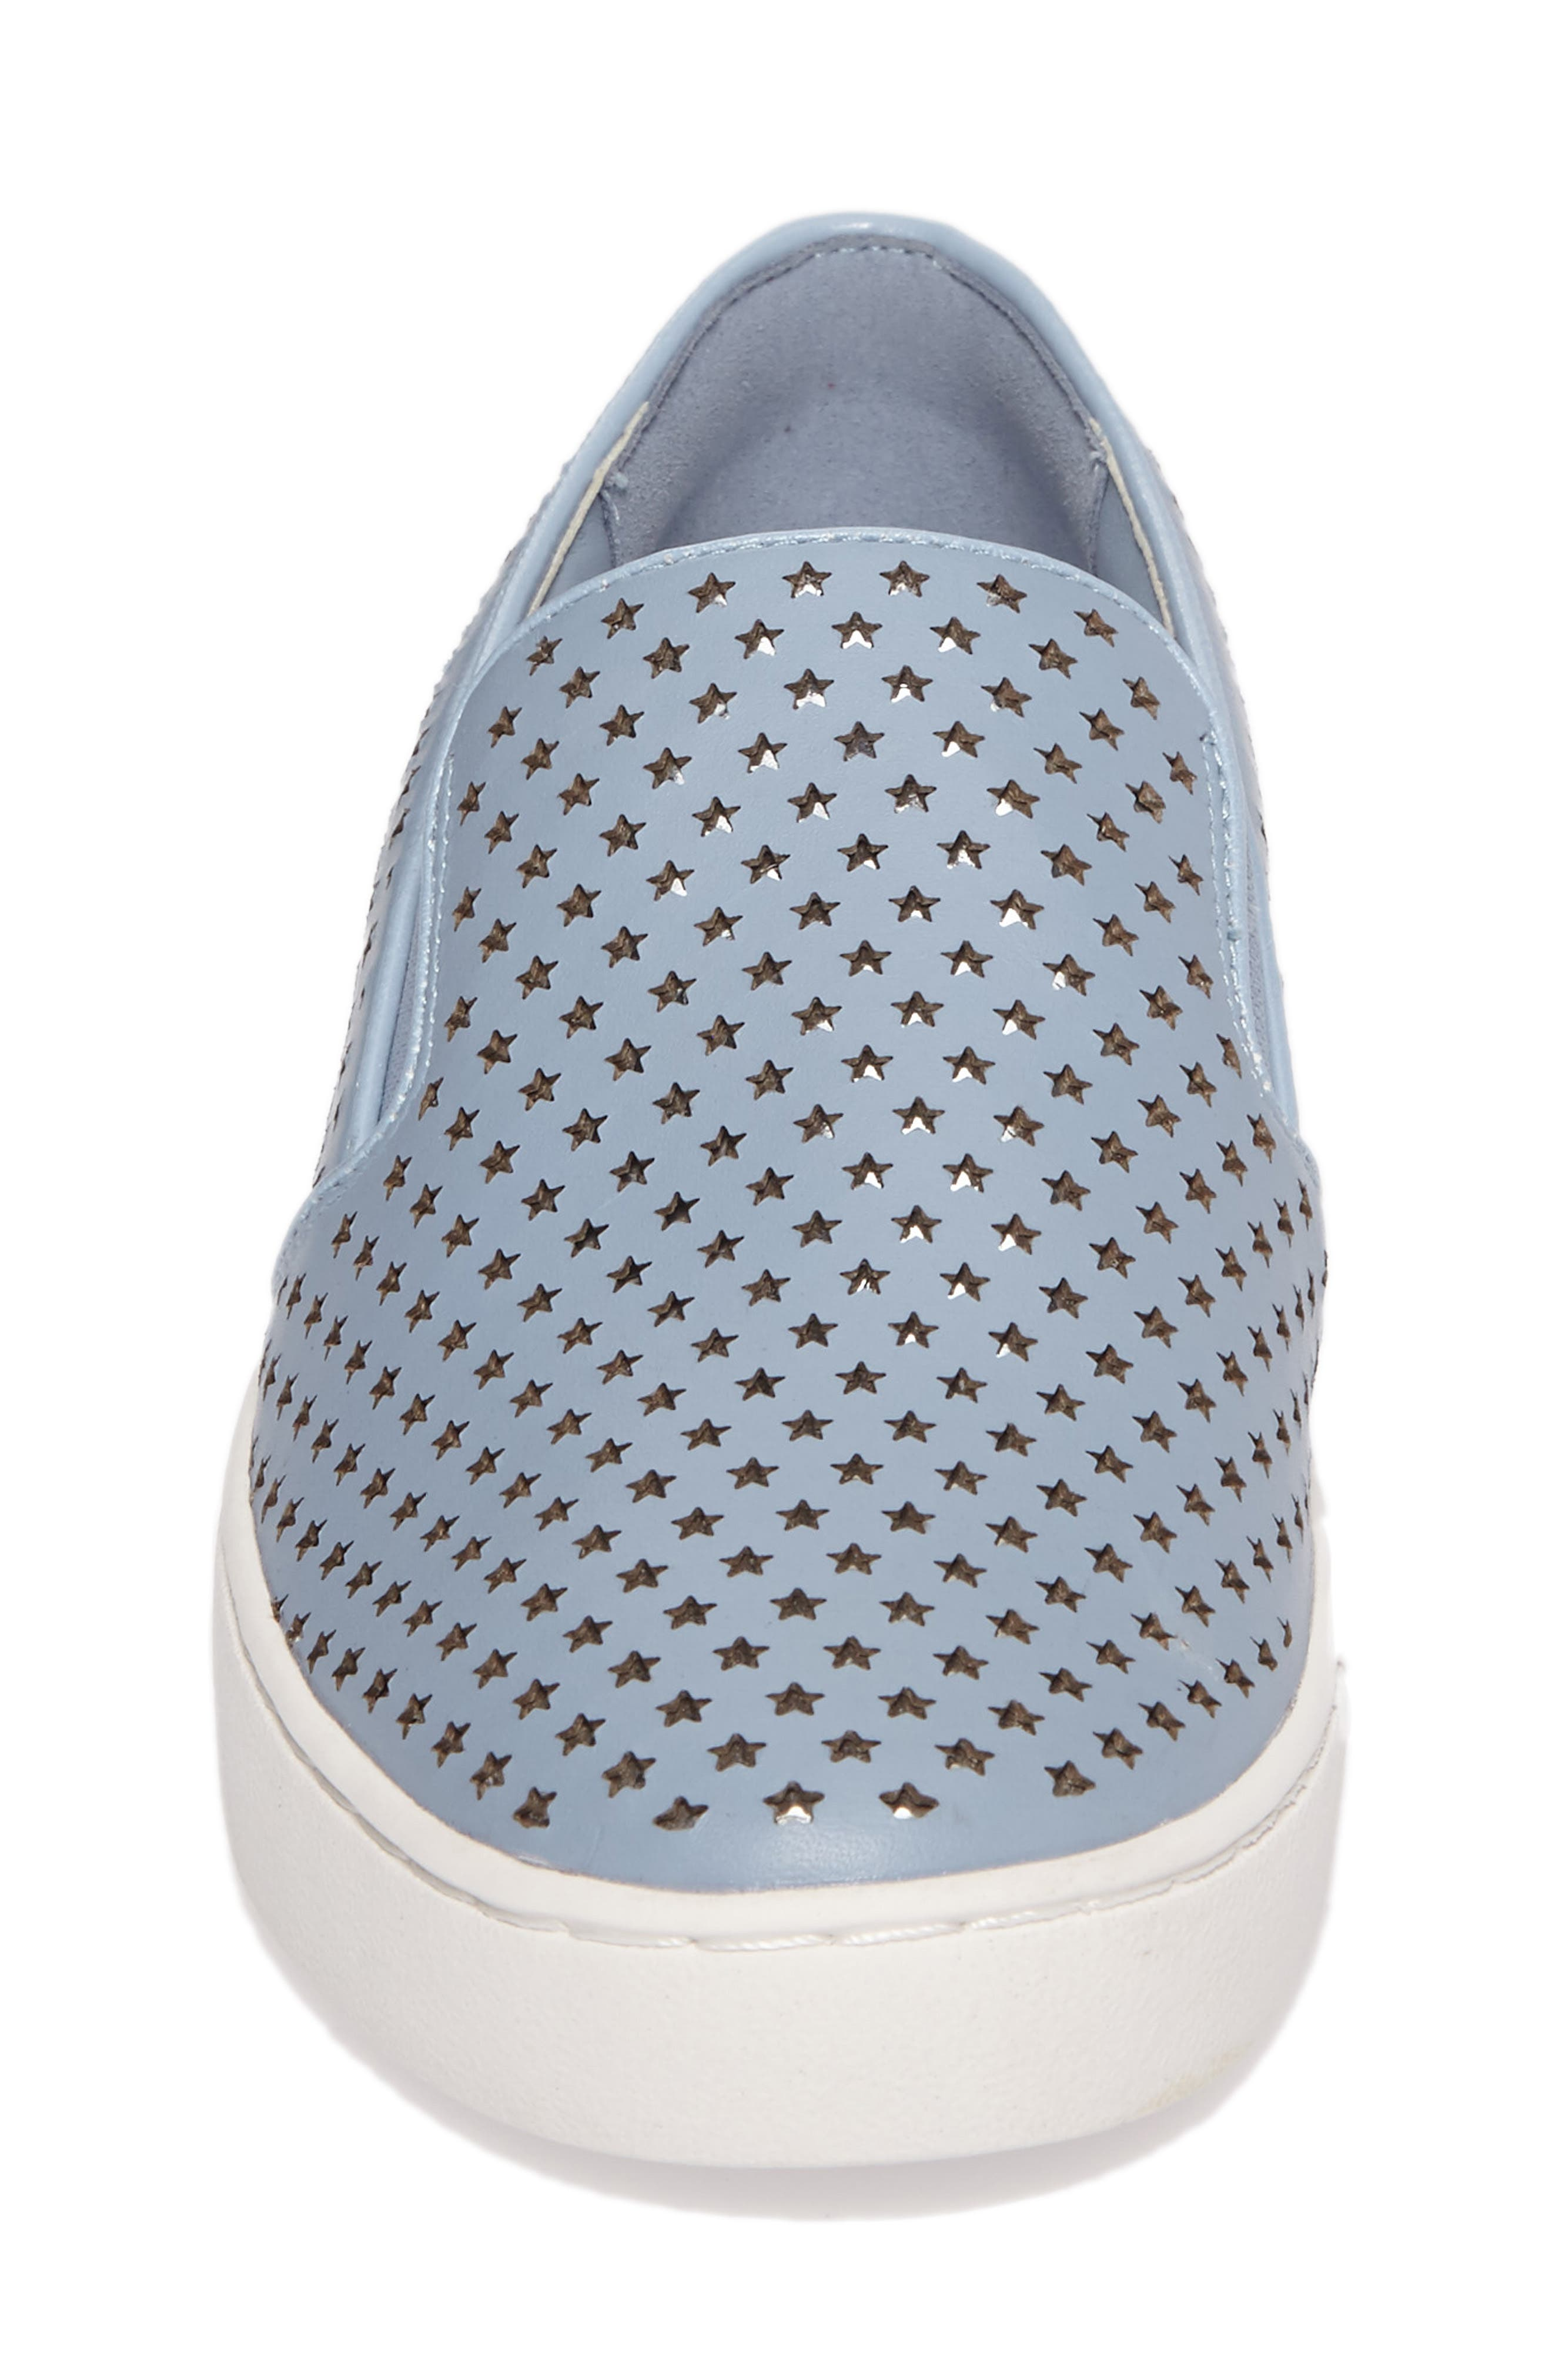 Keaton Slip-On Sneaker,                             Alternate thumbnail 4, color,                             Pale Blue Perforated Star